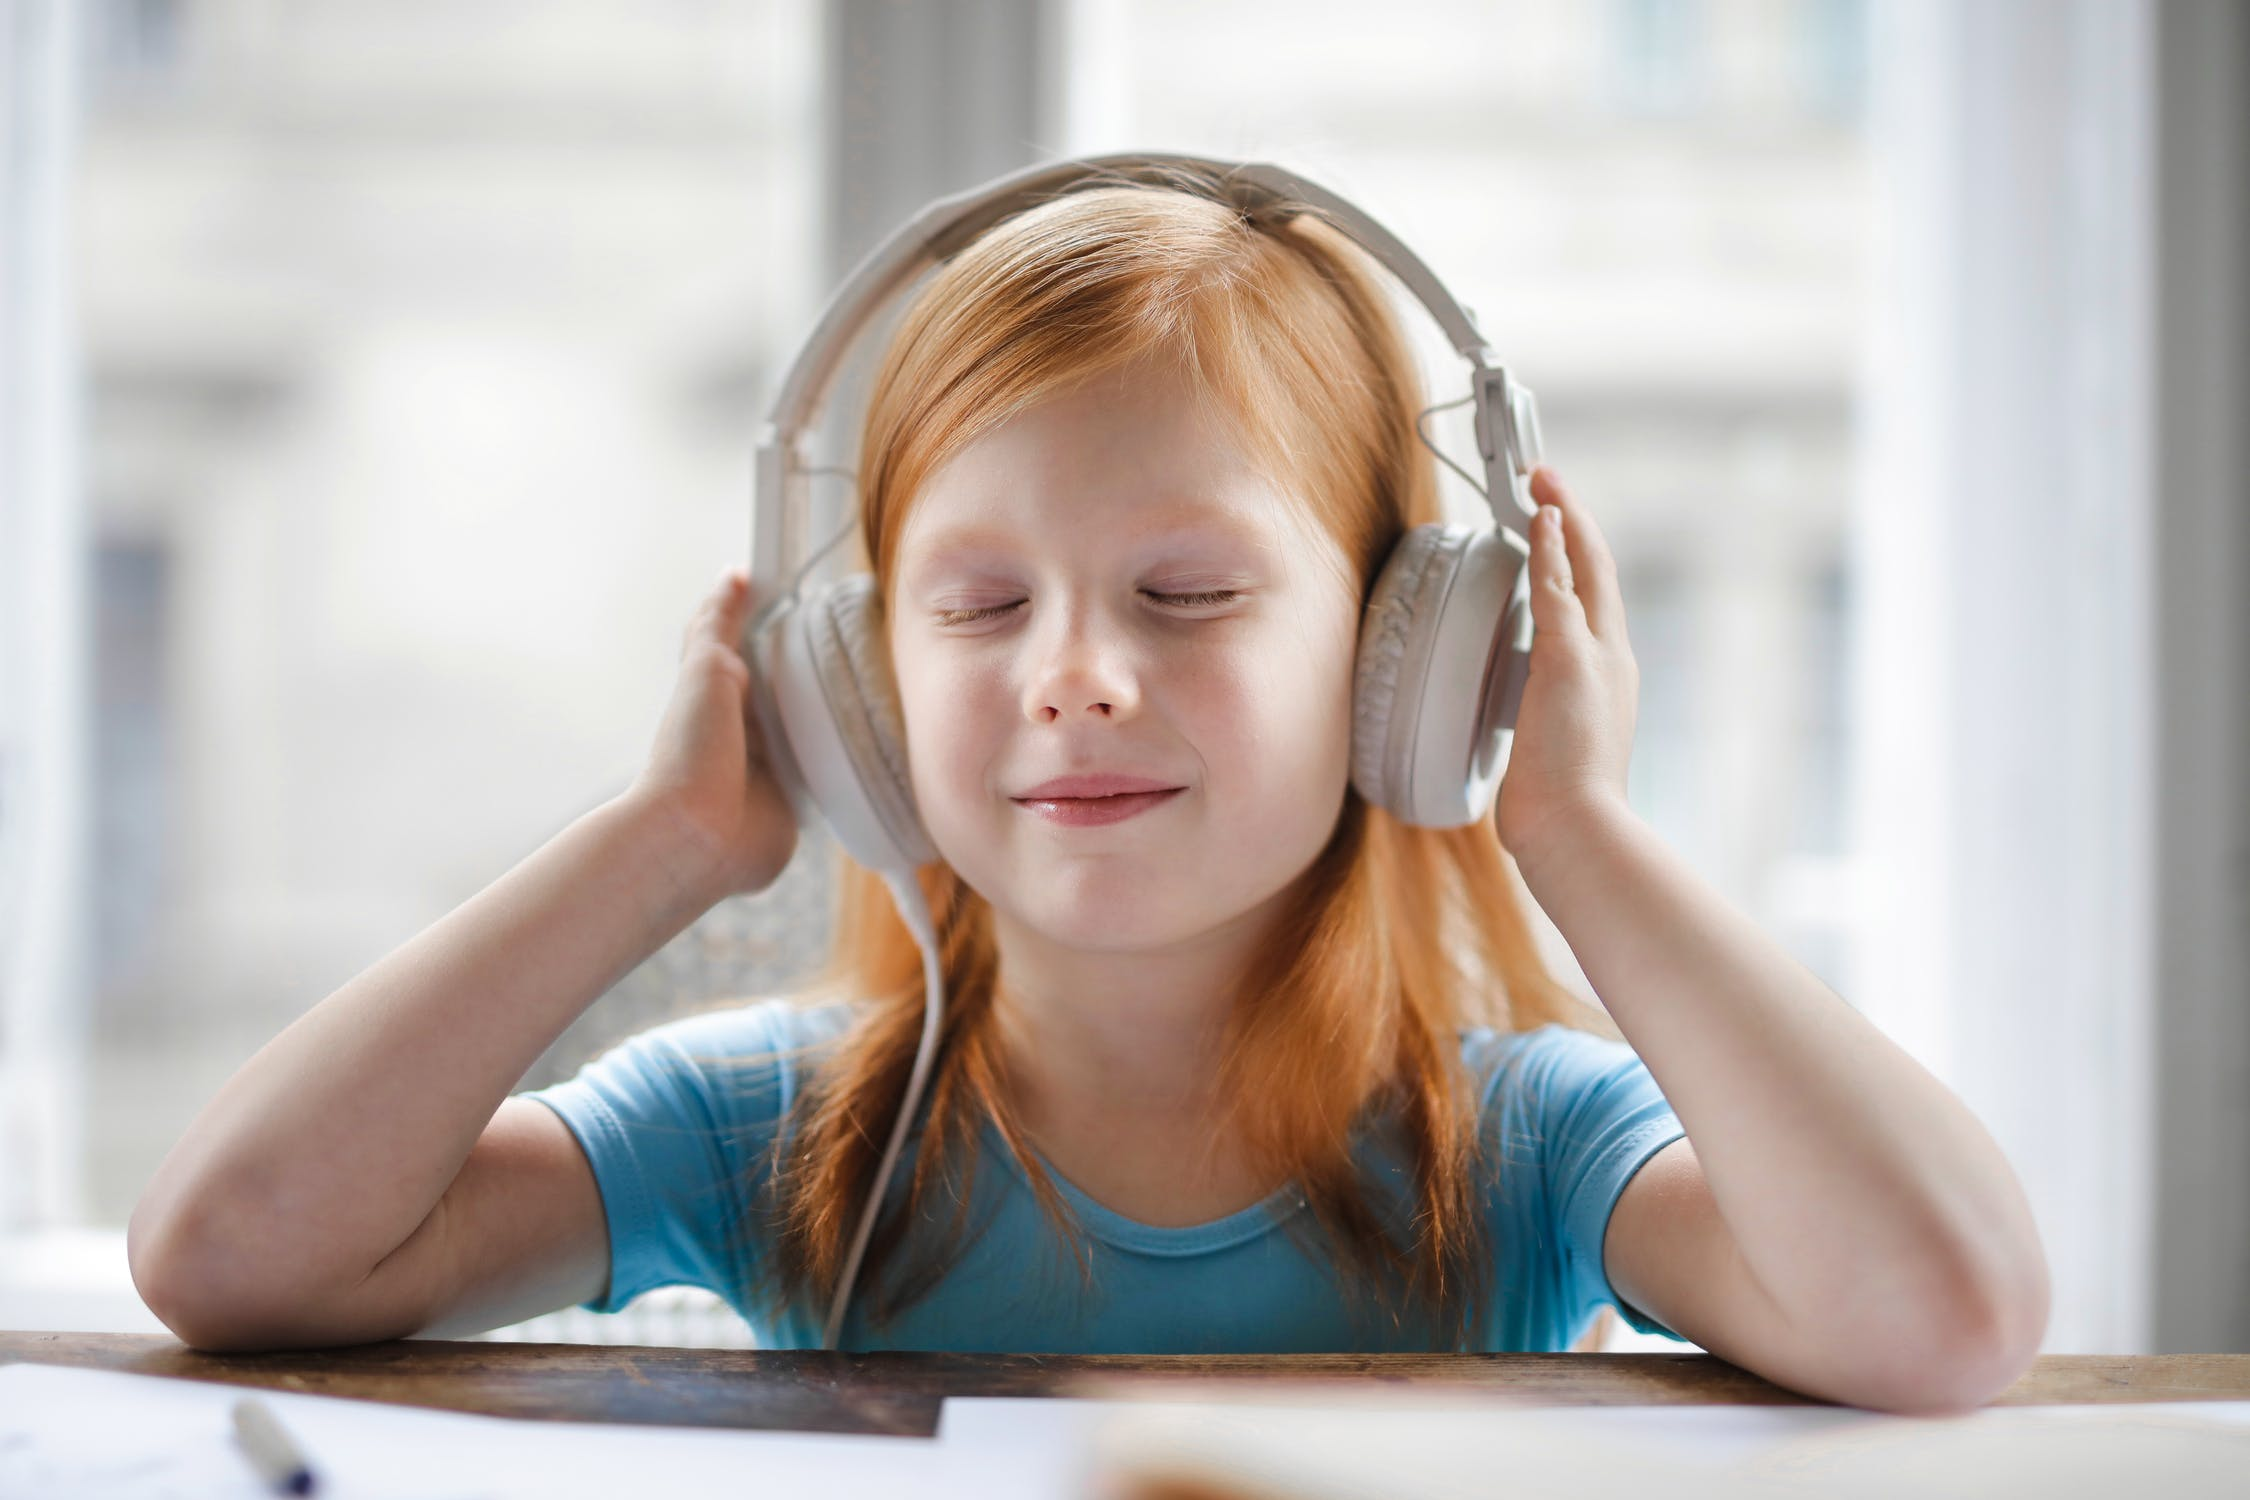 Kid with headphones